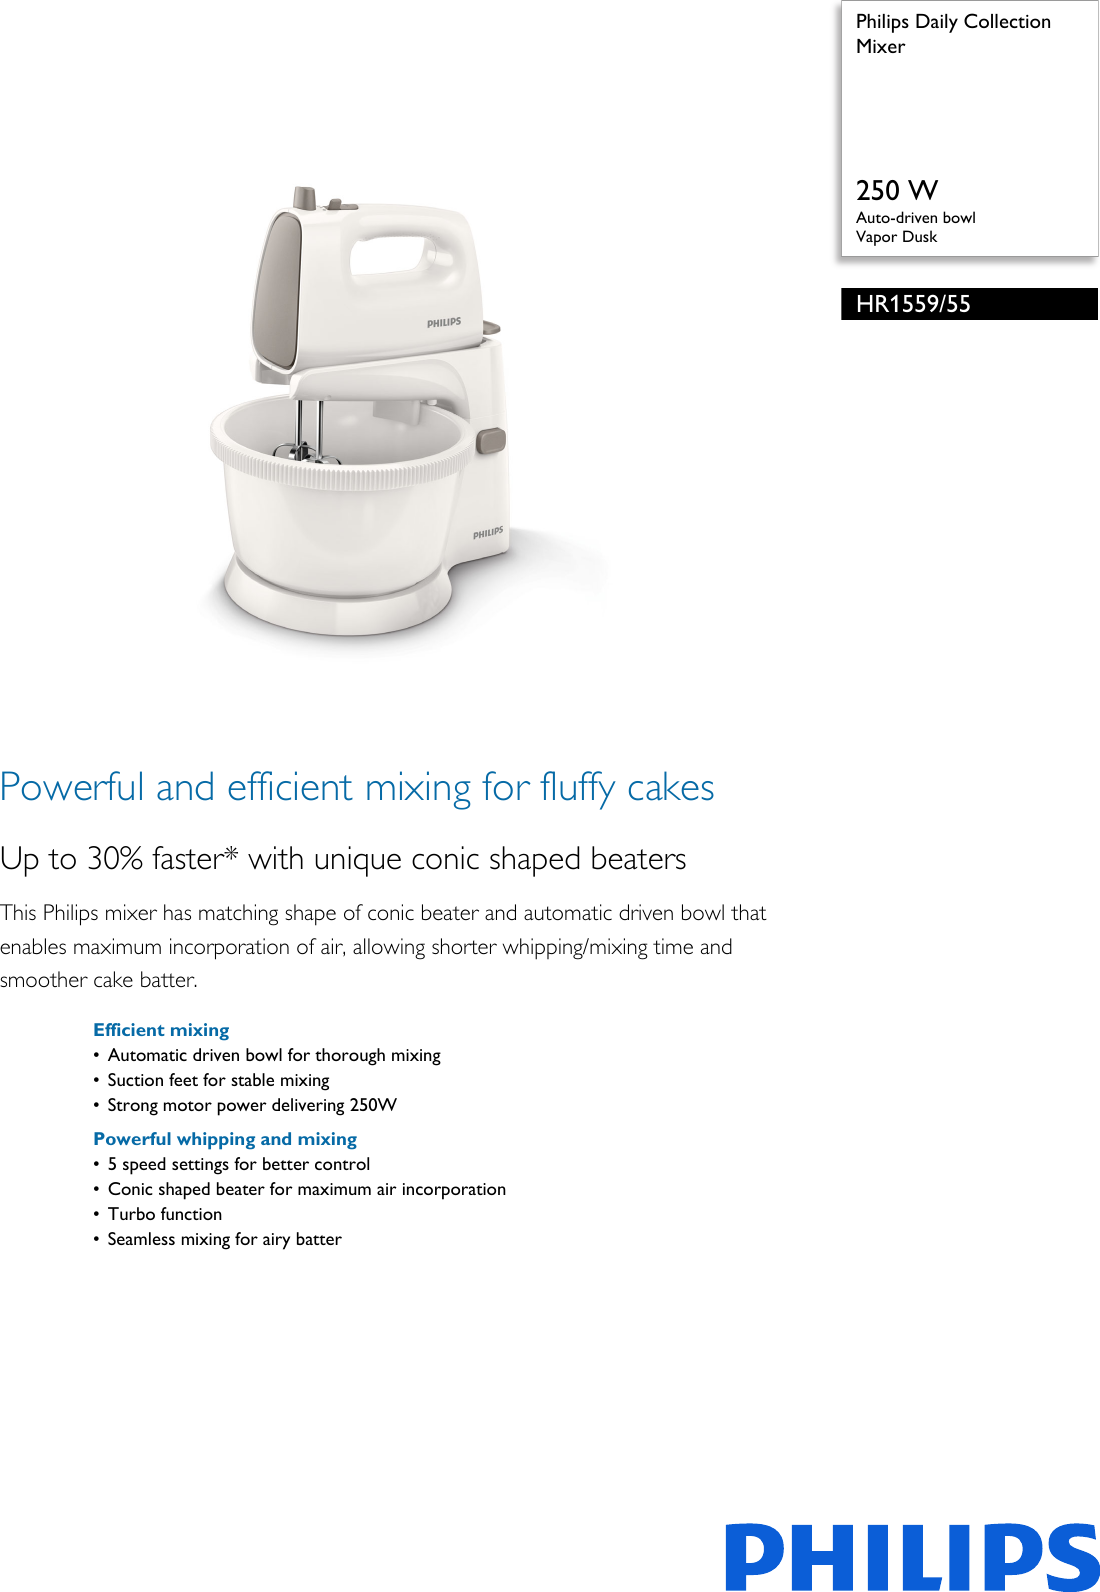 Philips Stand Mixer Hr1559 New Product Spec Dan Daftar Harga With Grey 55